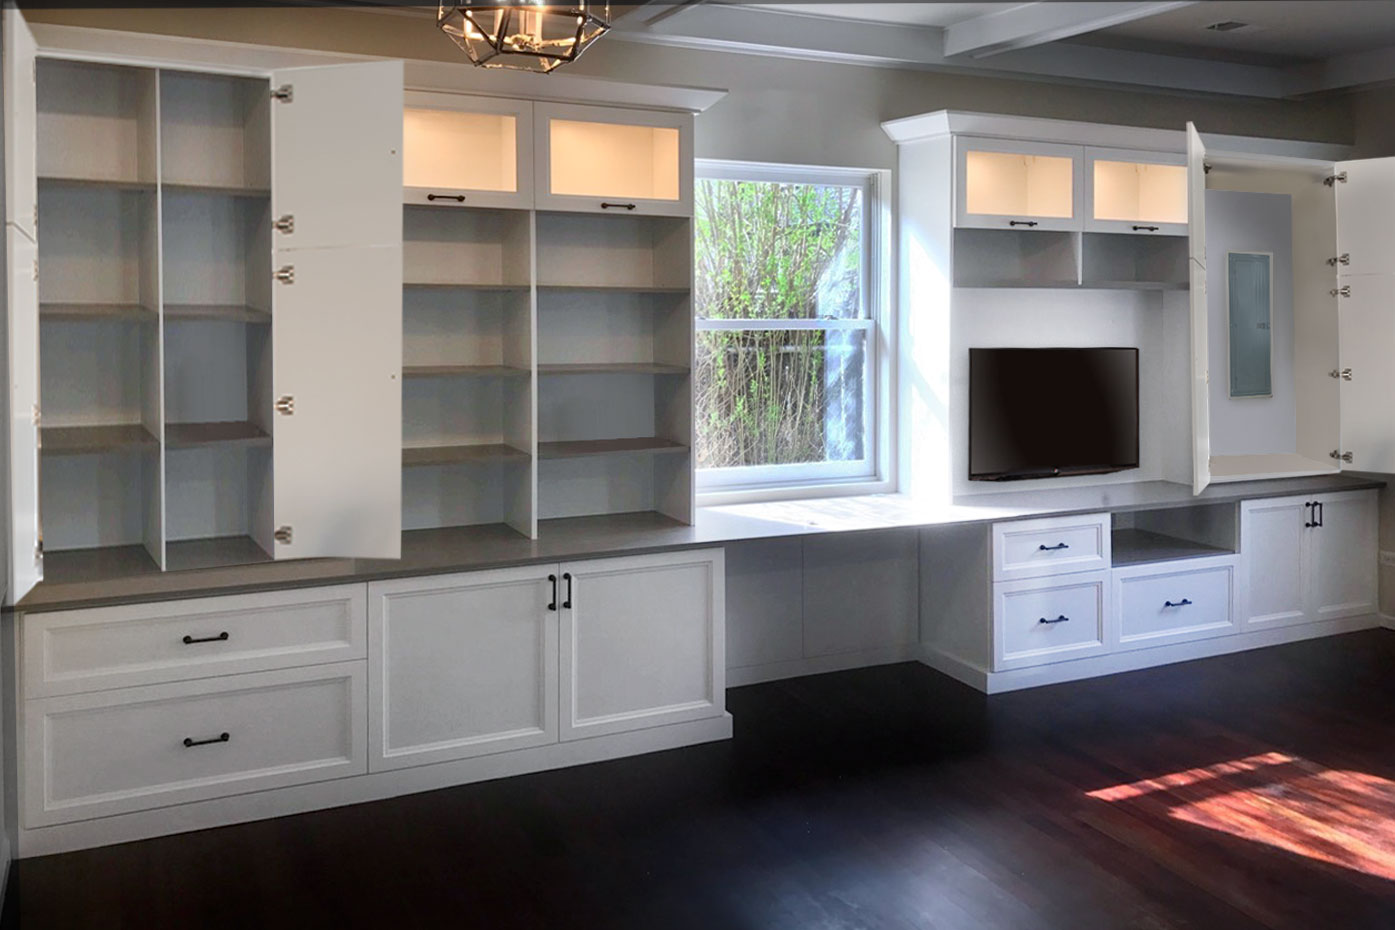 Large built-in entertainment center with built-in desk and extra storage